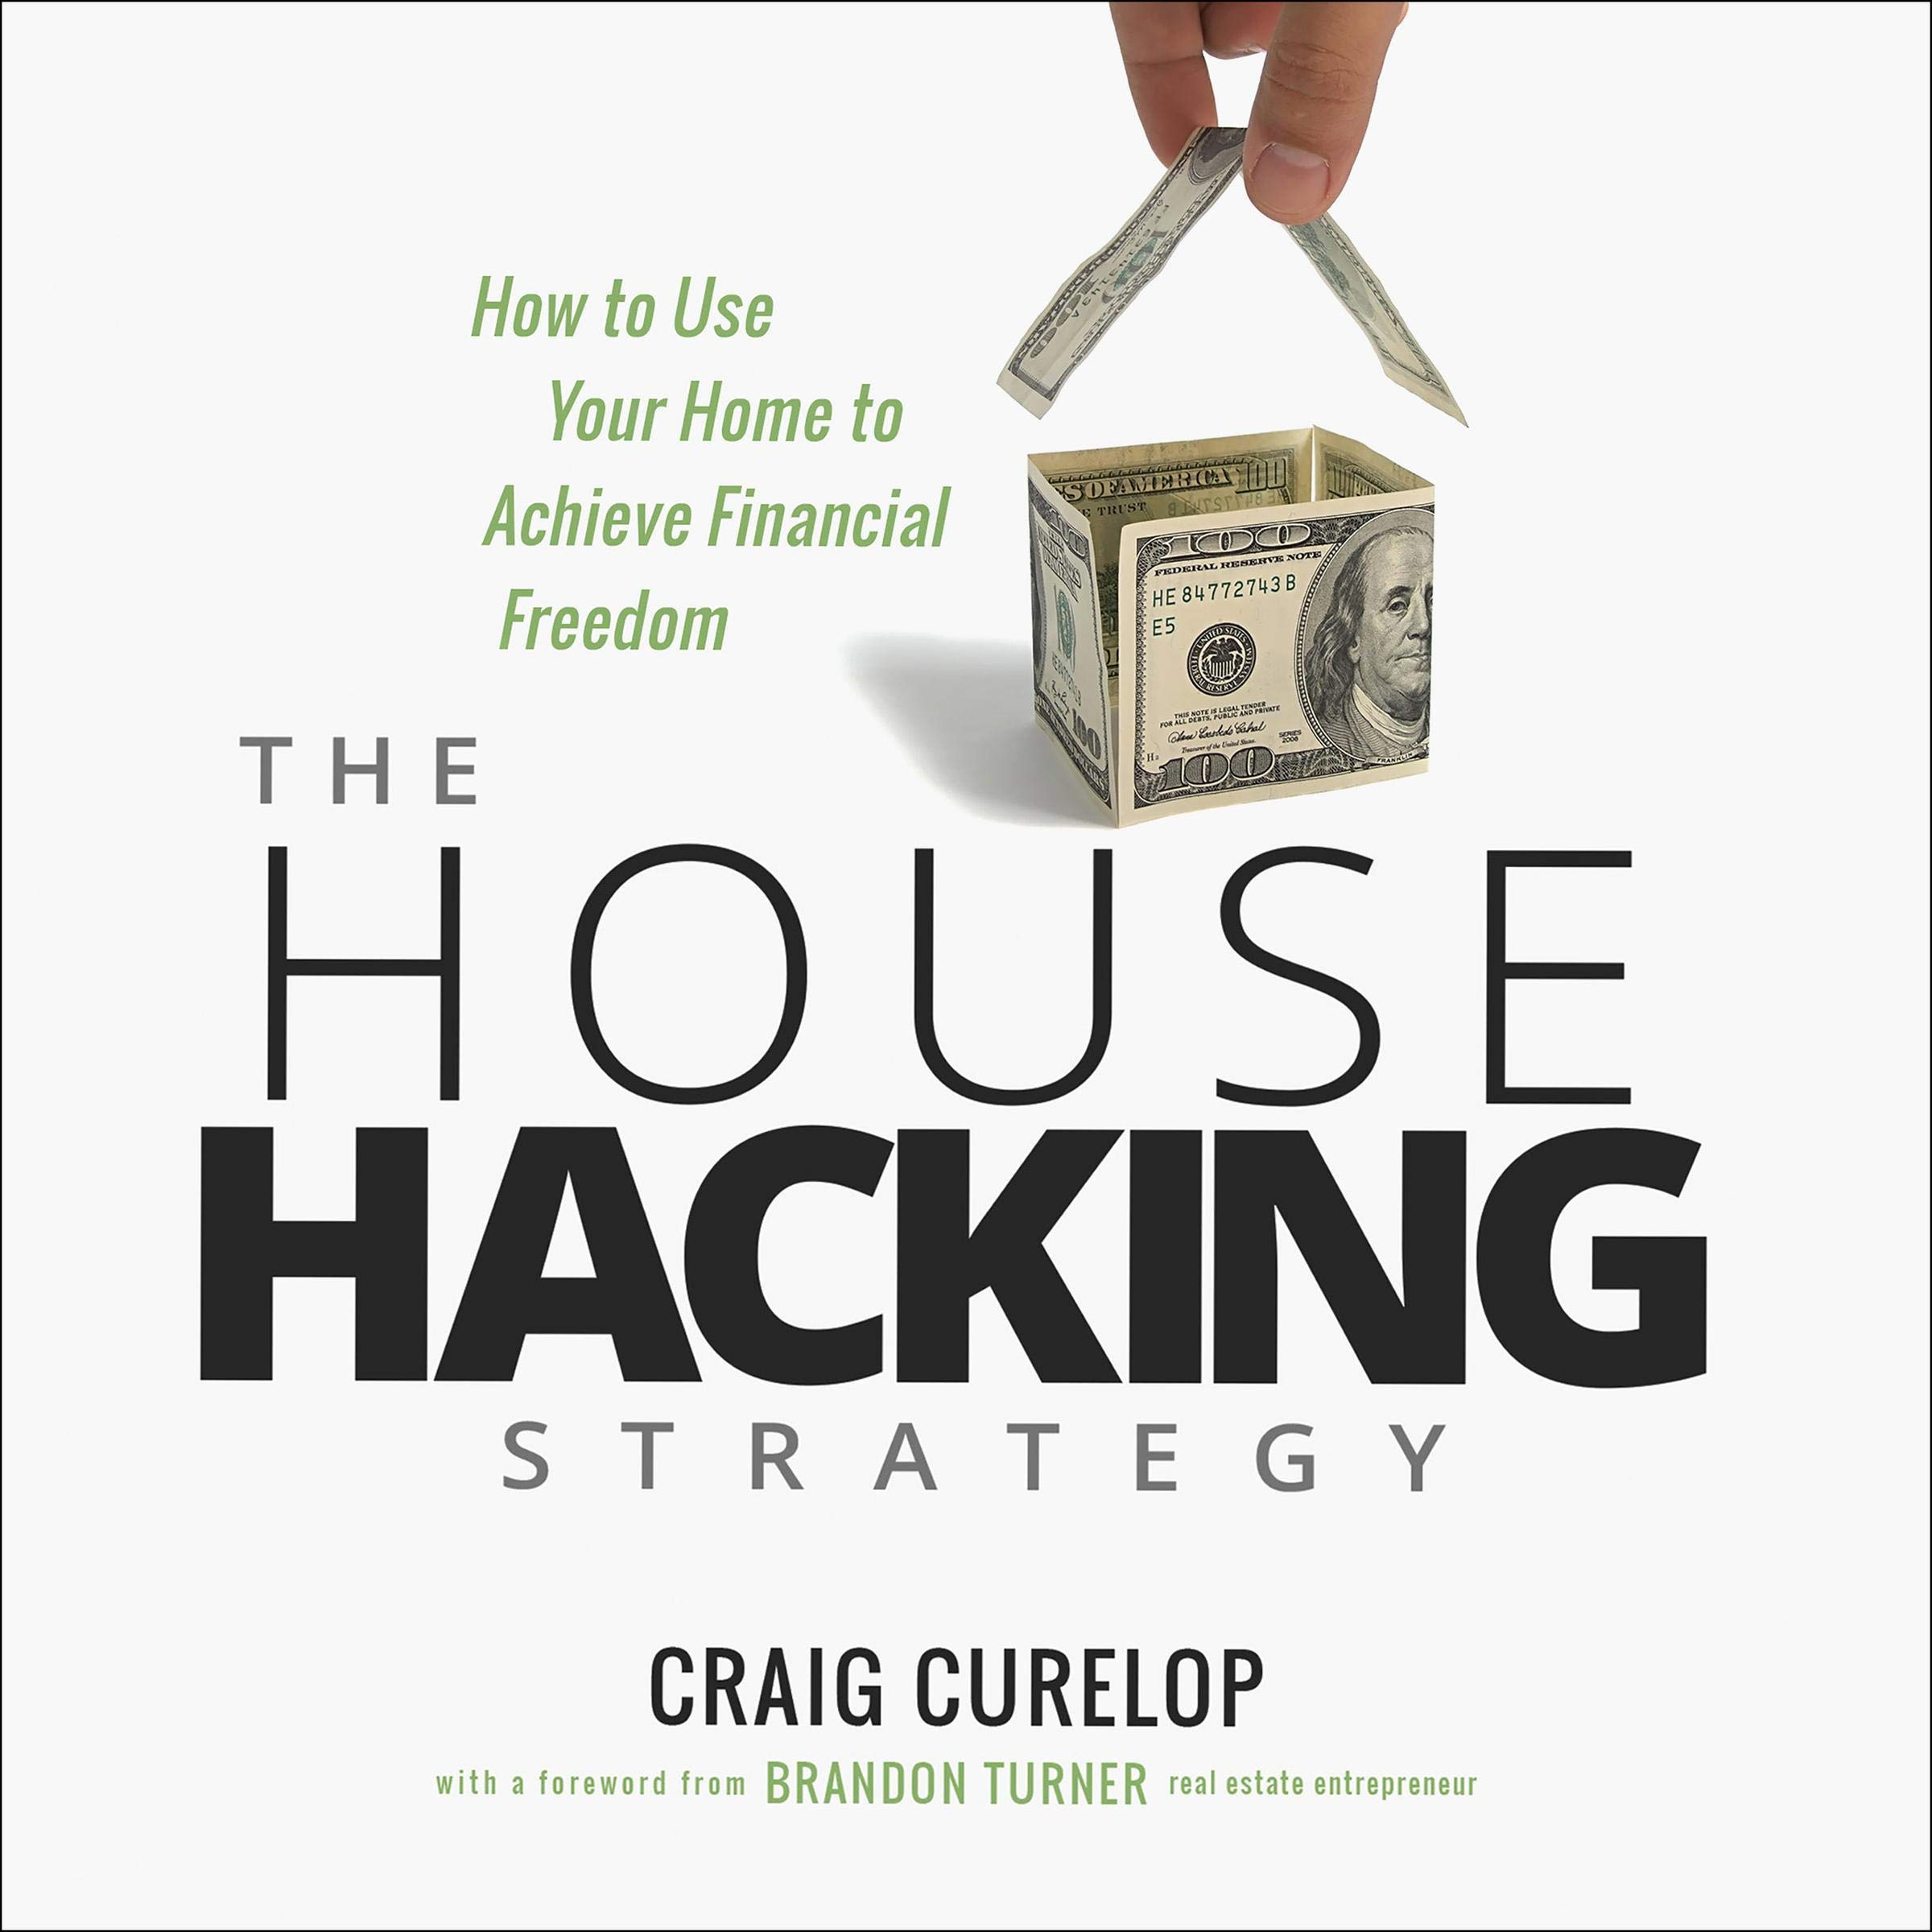 Image OfThe House Hacking Strategy: How To Use Your Home To Achieve Financial Freedom